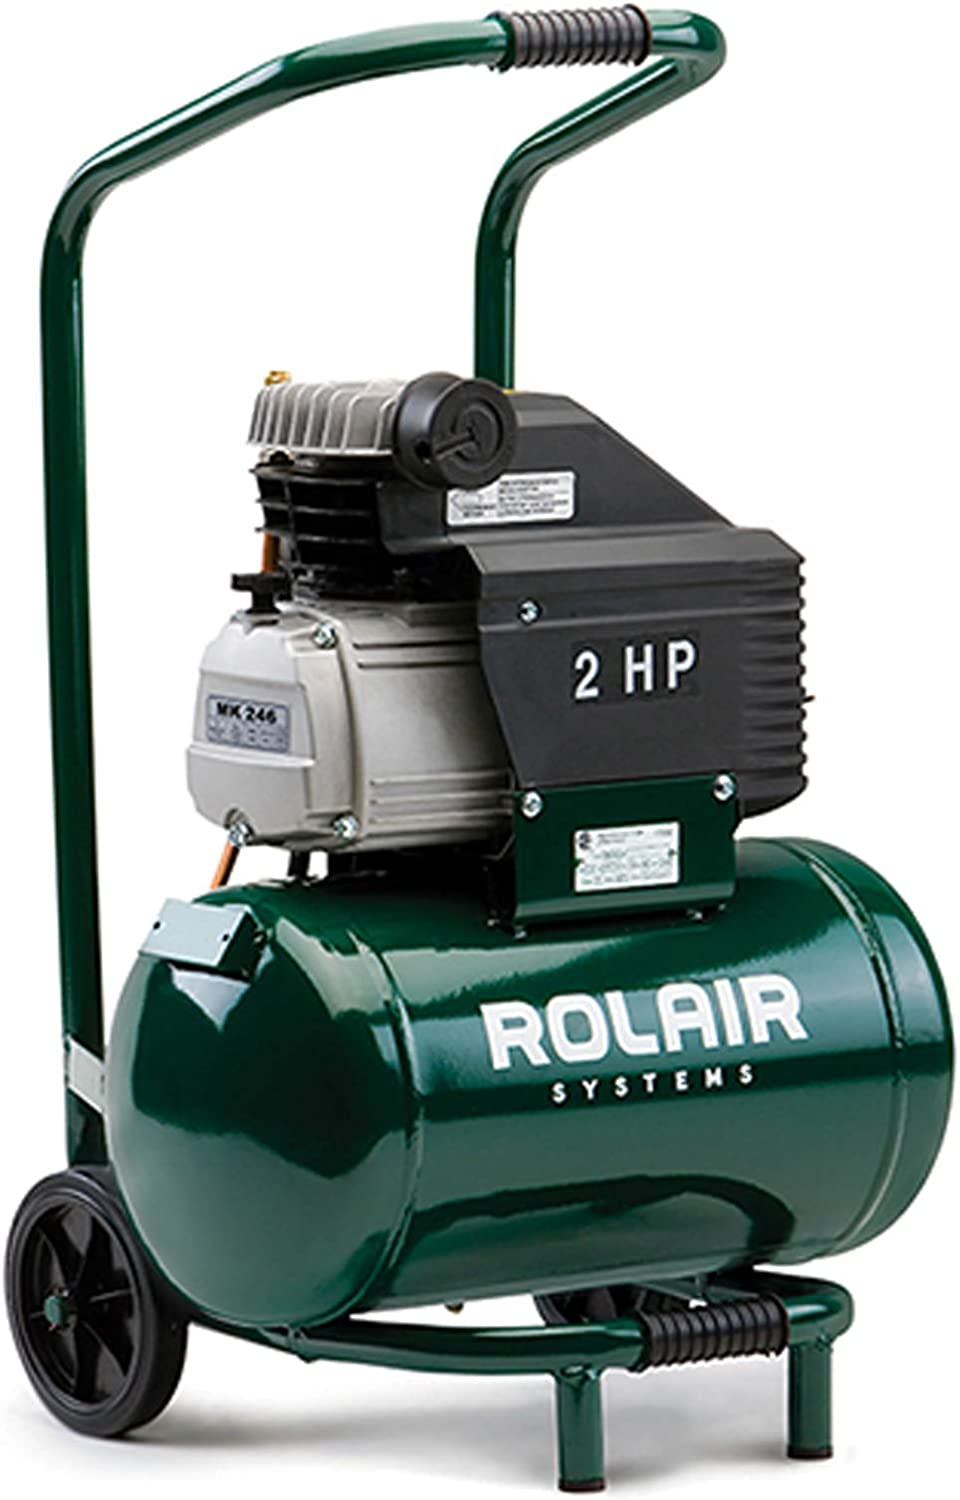 Rolair FC2002HBP6 2 HP Wheeled Compressor with Overload Protection and Manual Reset